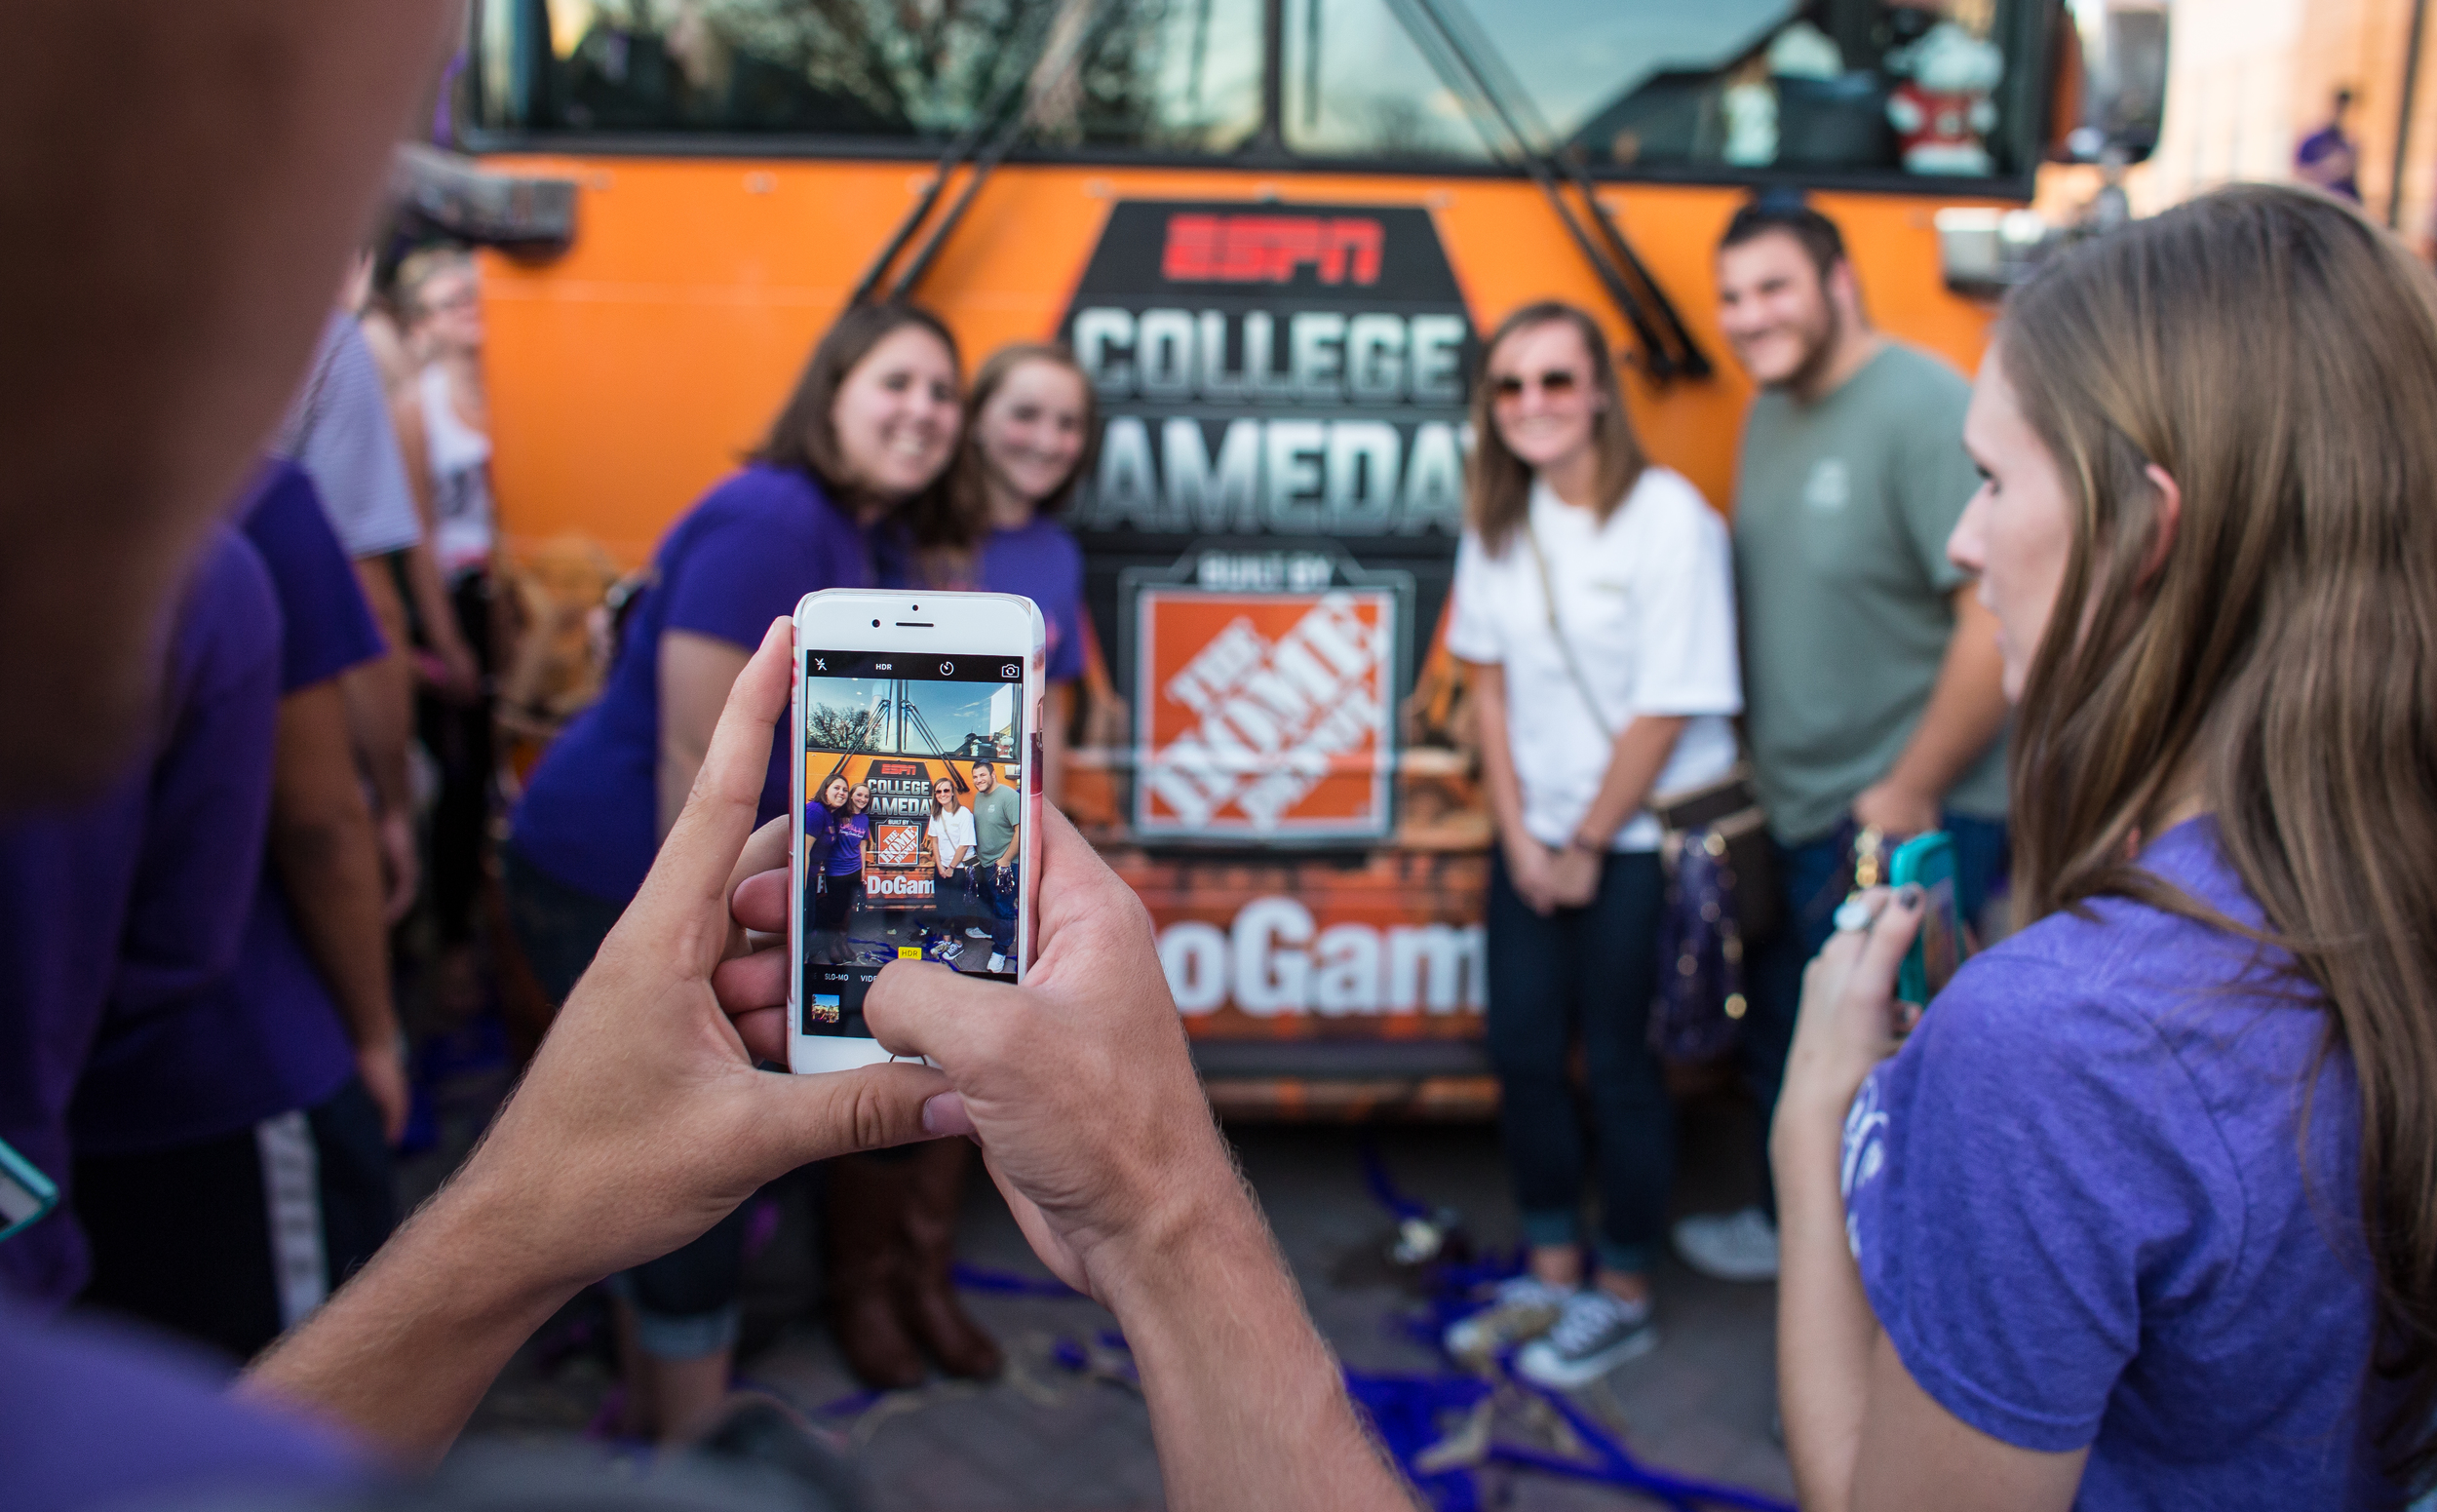 JMU students pose for a photo in front of the ESPN College GameDay bus.